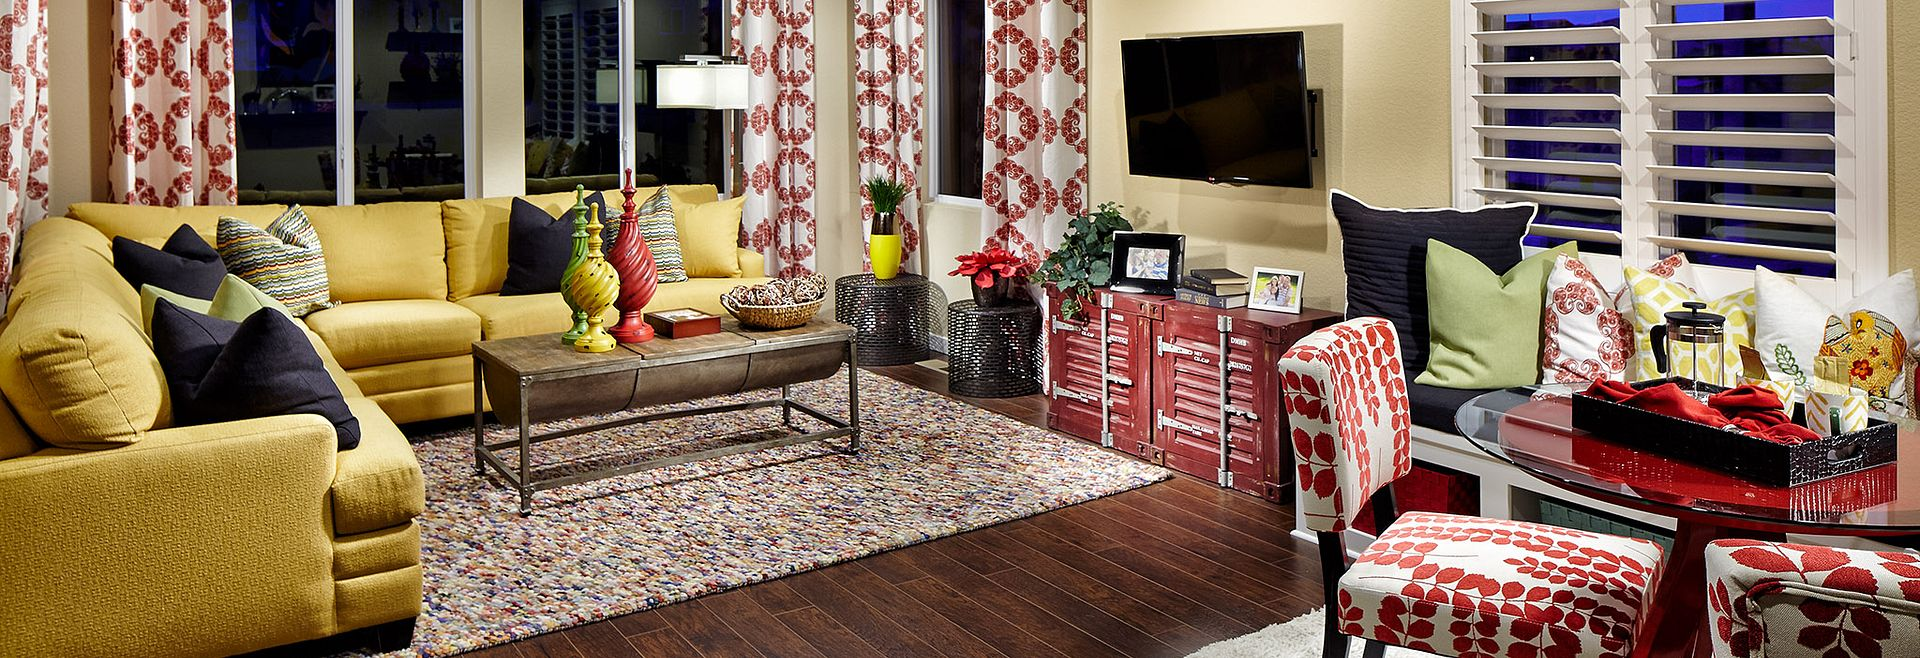 SPACES Discovery Plan 3507 family room with sofa, area rug, windows, and drapes